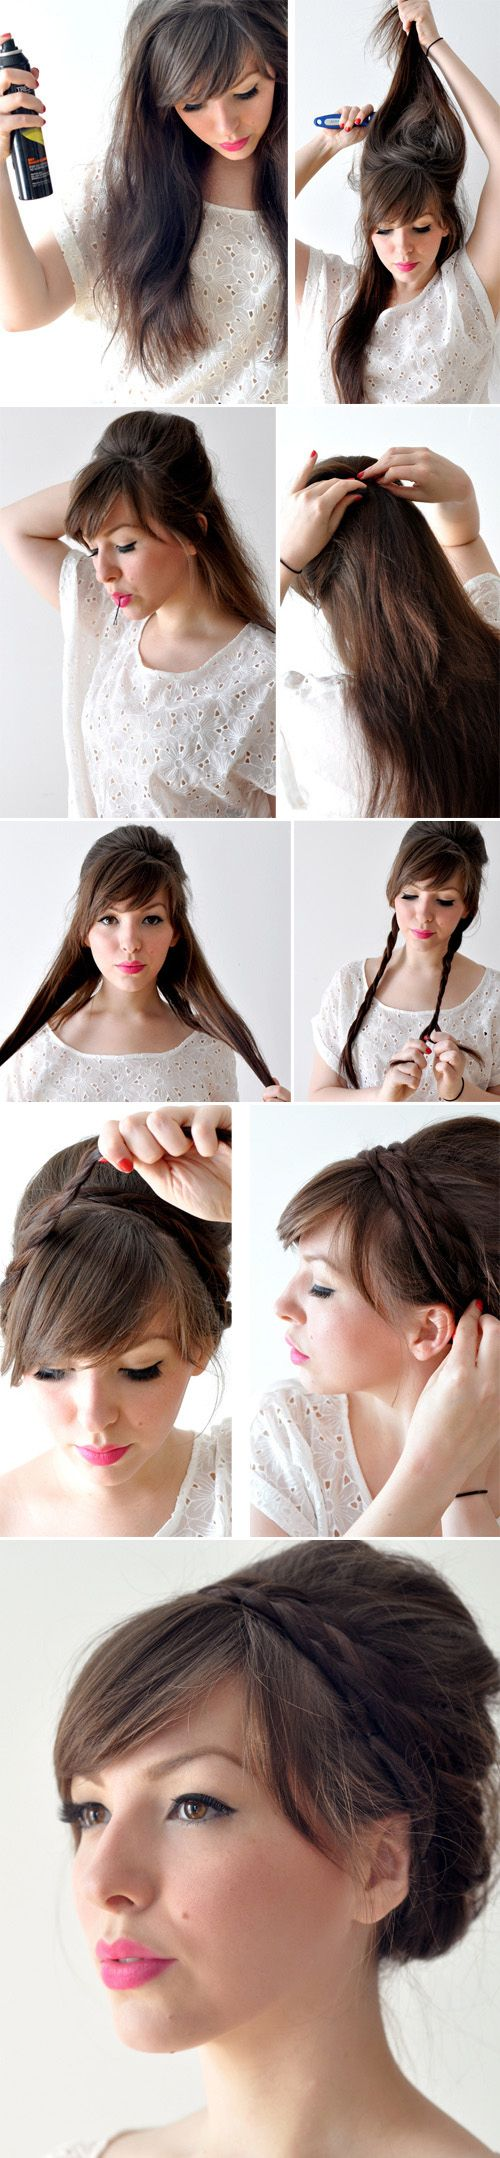 How To Get Summer S 27 Best Hairstyles Hair Styles Long Hair Styles Hair Beauty